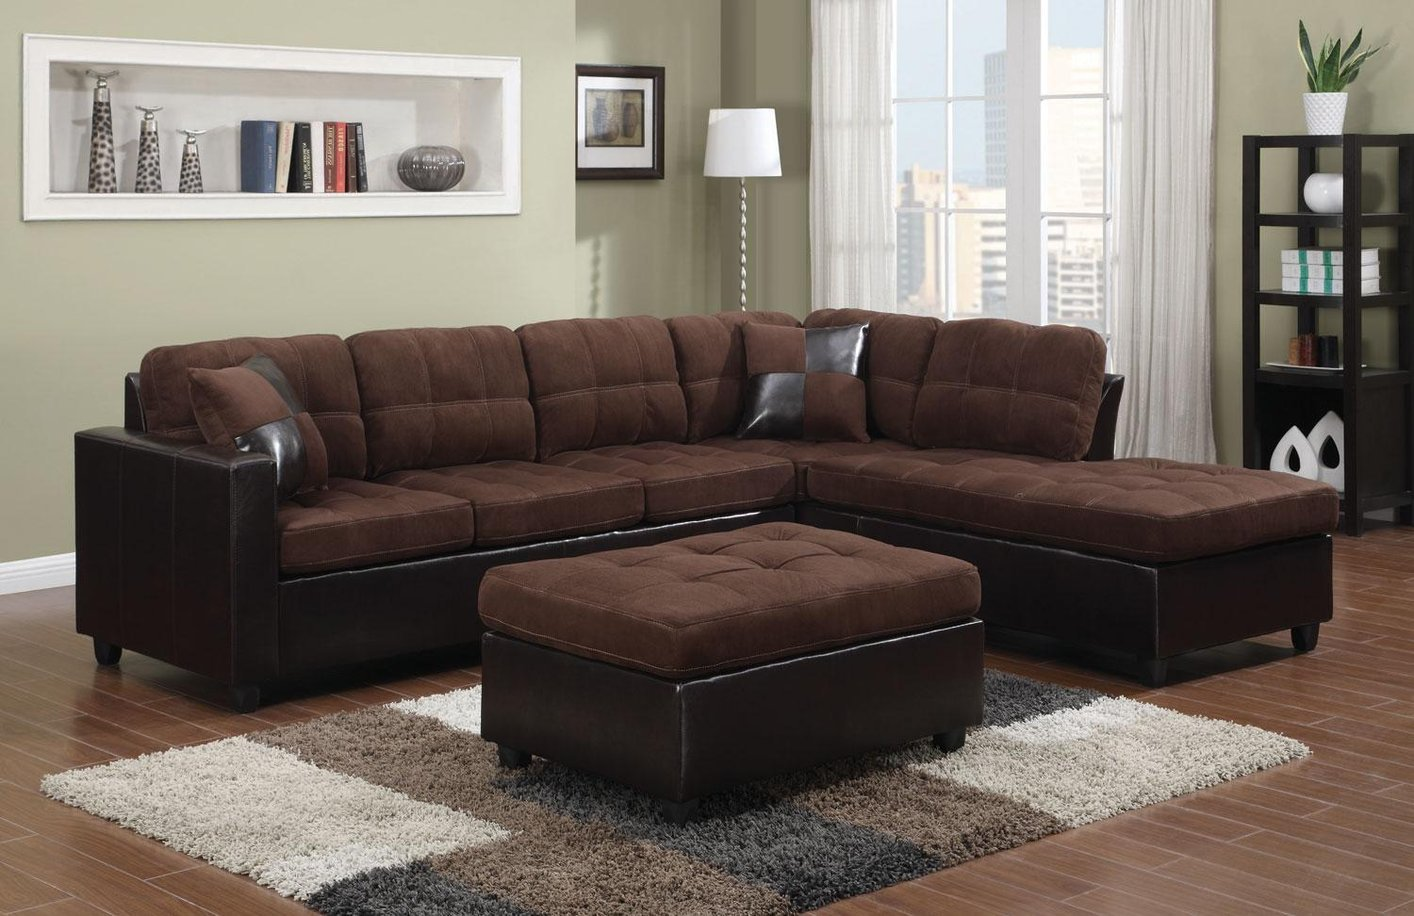 Coaster Mallory 505655 Brown Fabric Sectional Sofa